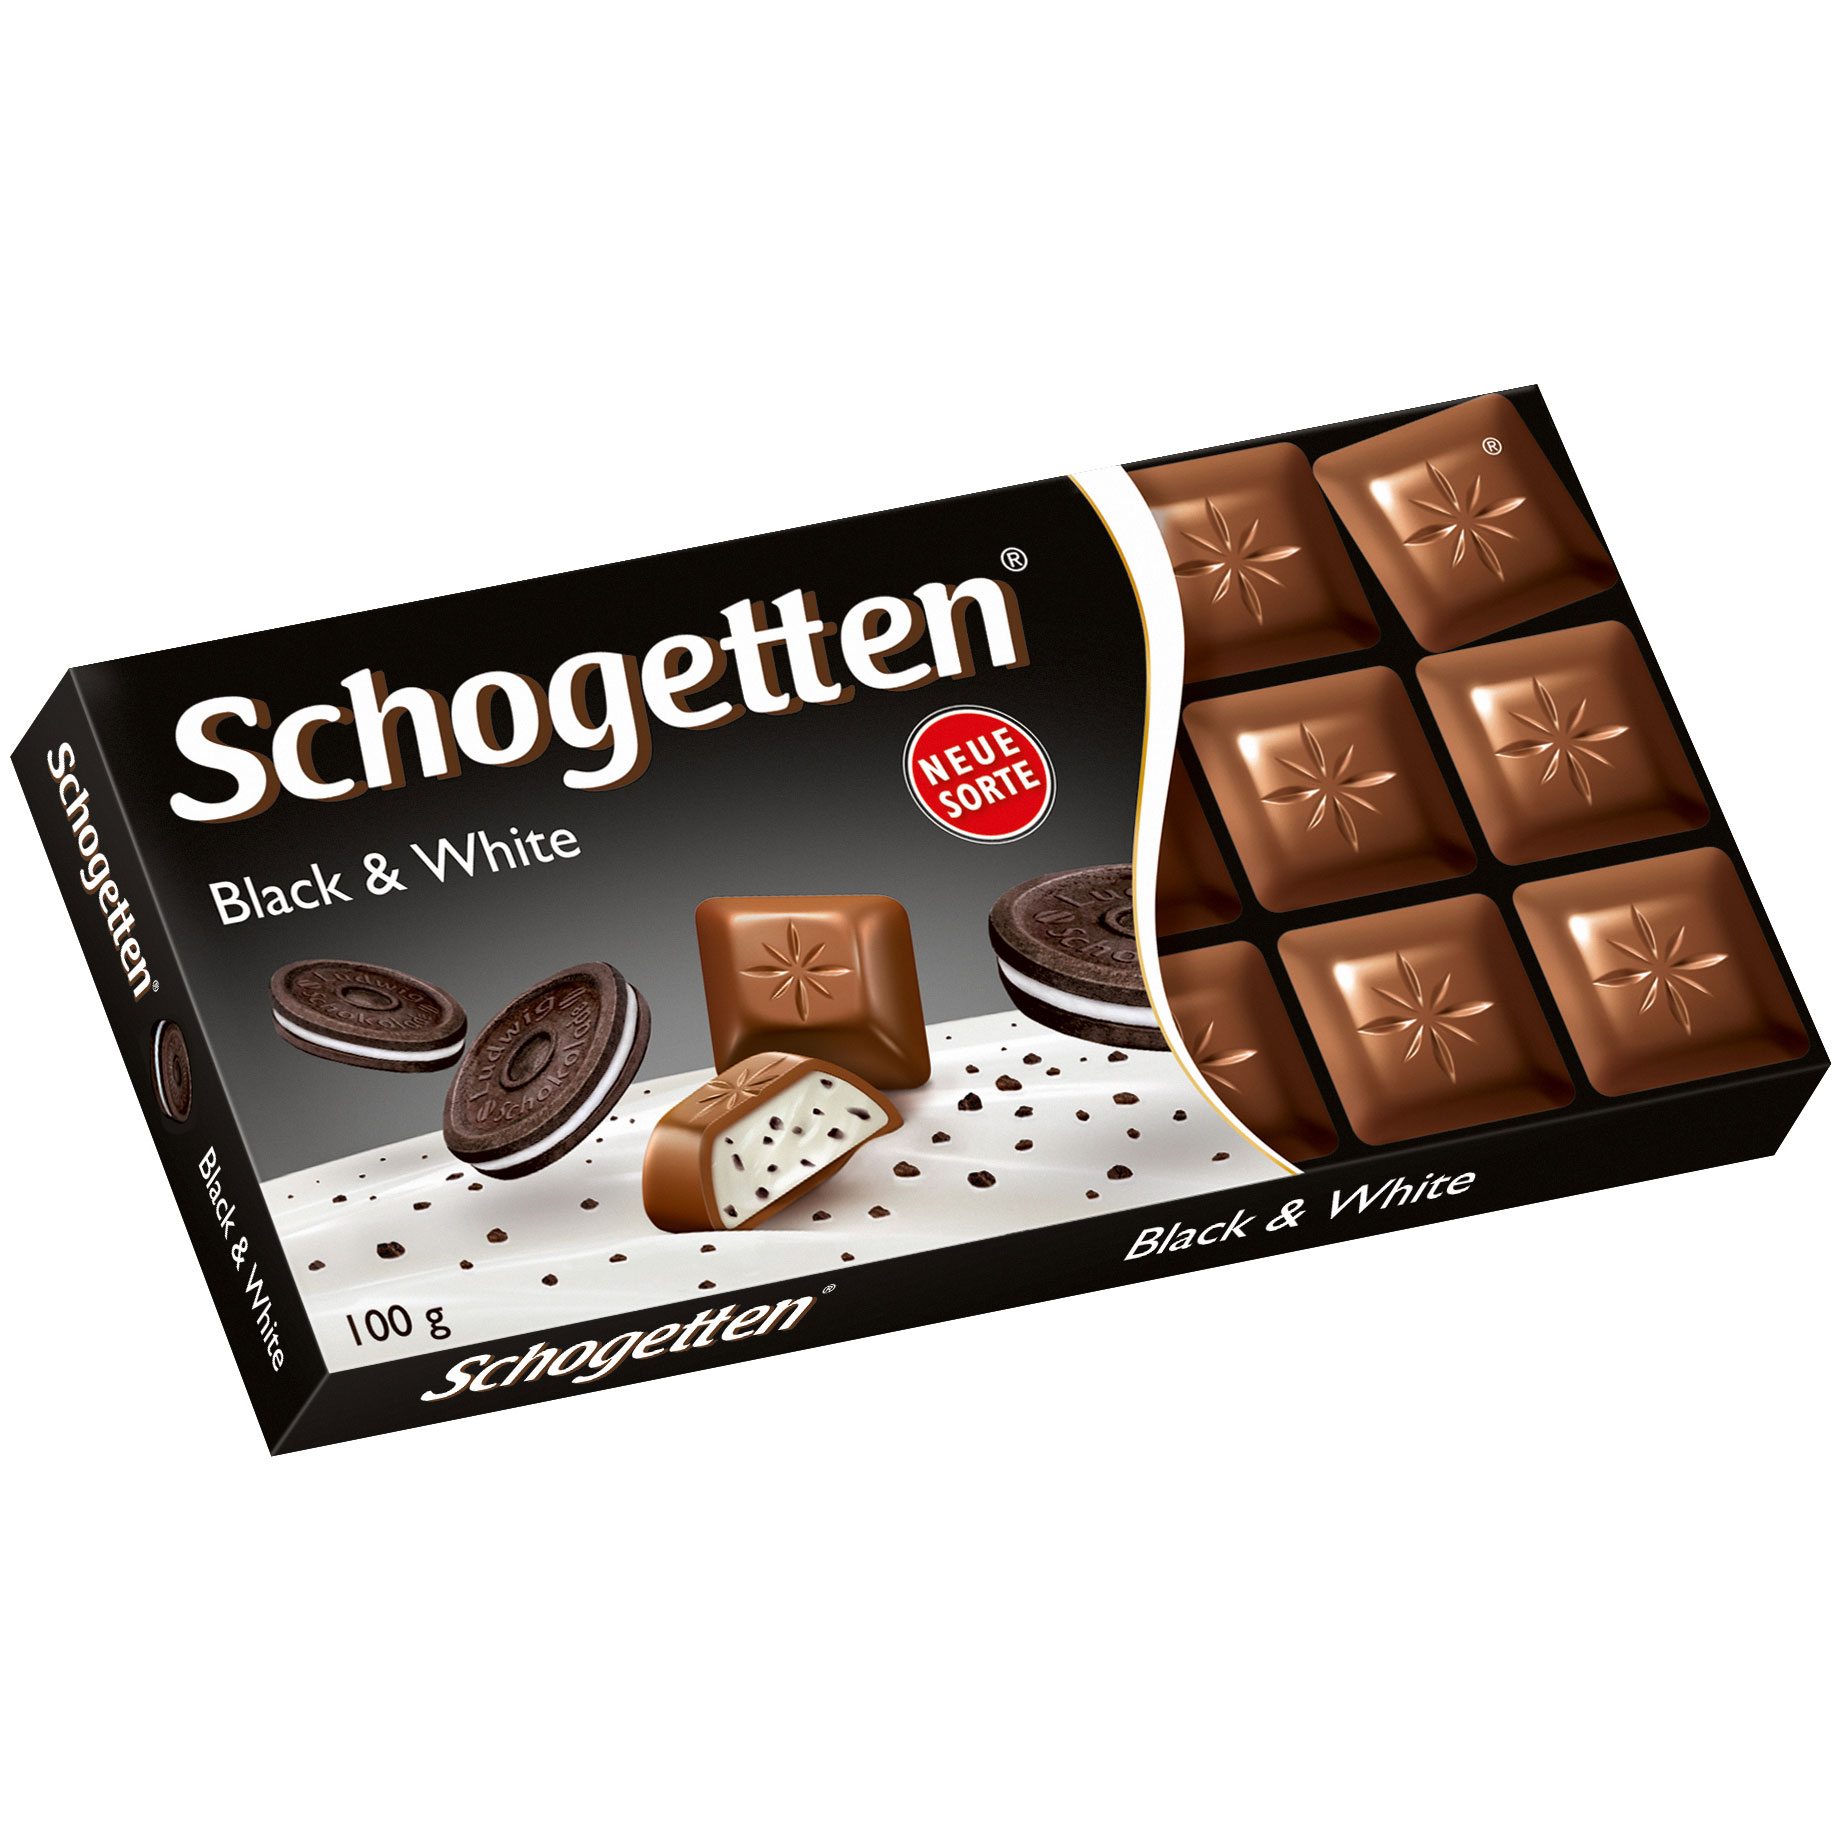 Wholesale Schogetten Black & White chocolates